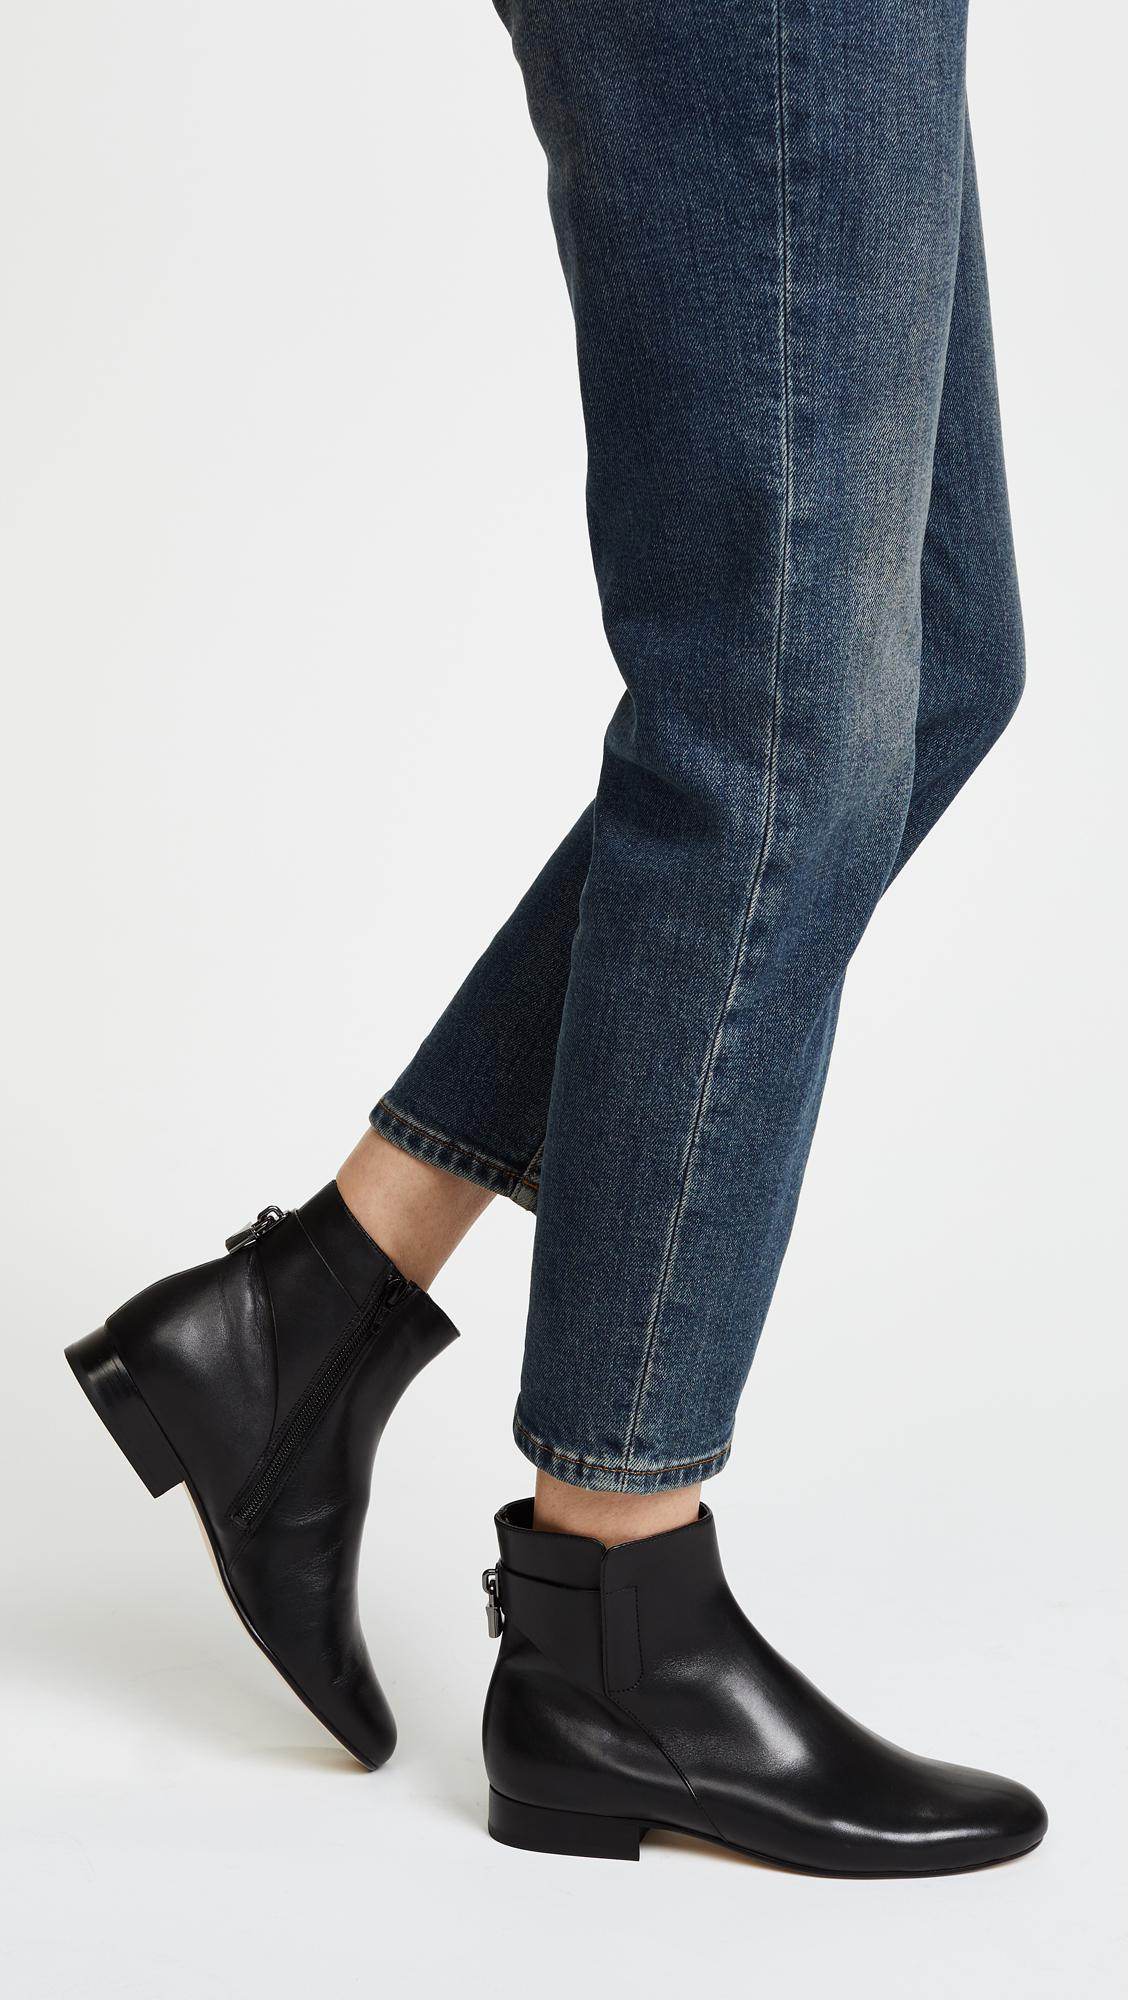 MICHAEL Michael Kors Leather Mira Flat Ankle Booties in Black